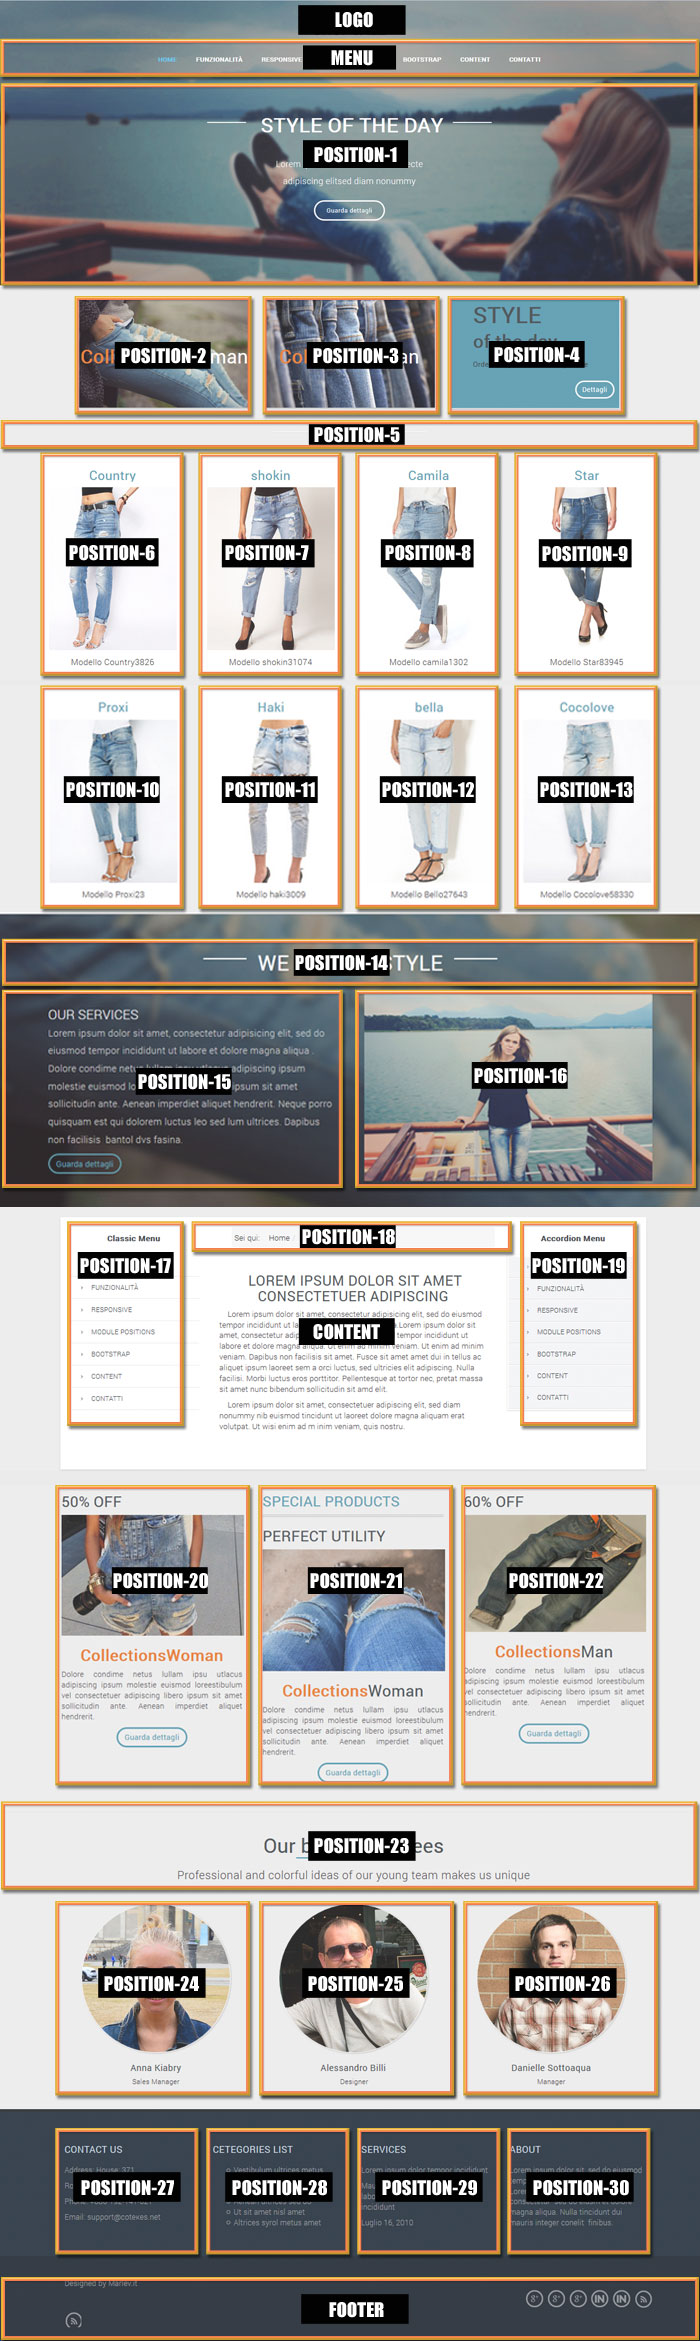 Positions of template Shopsale